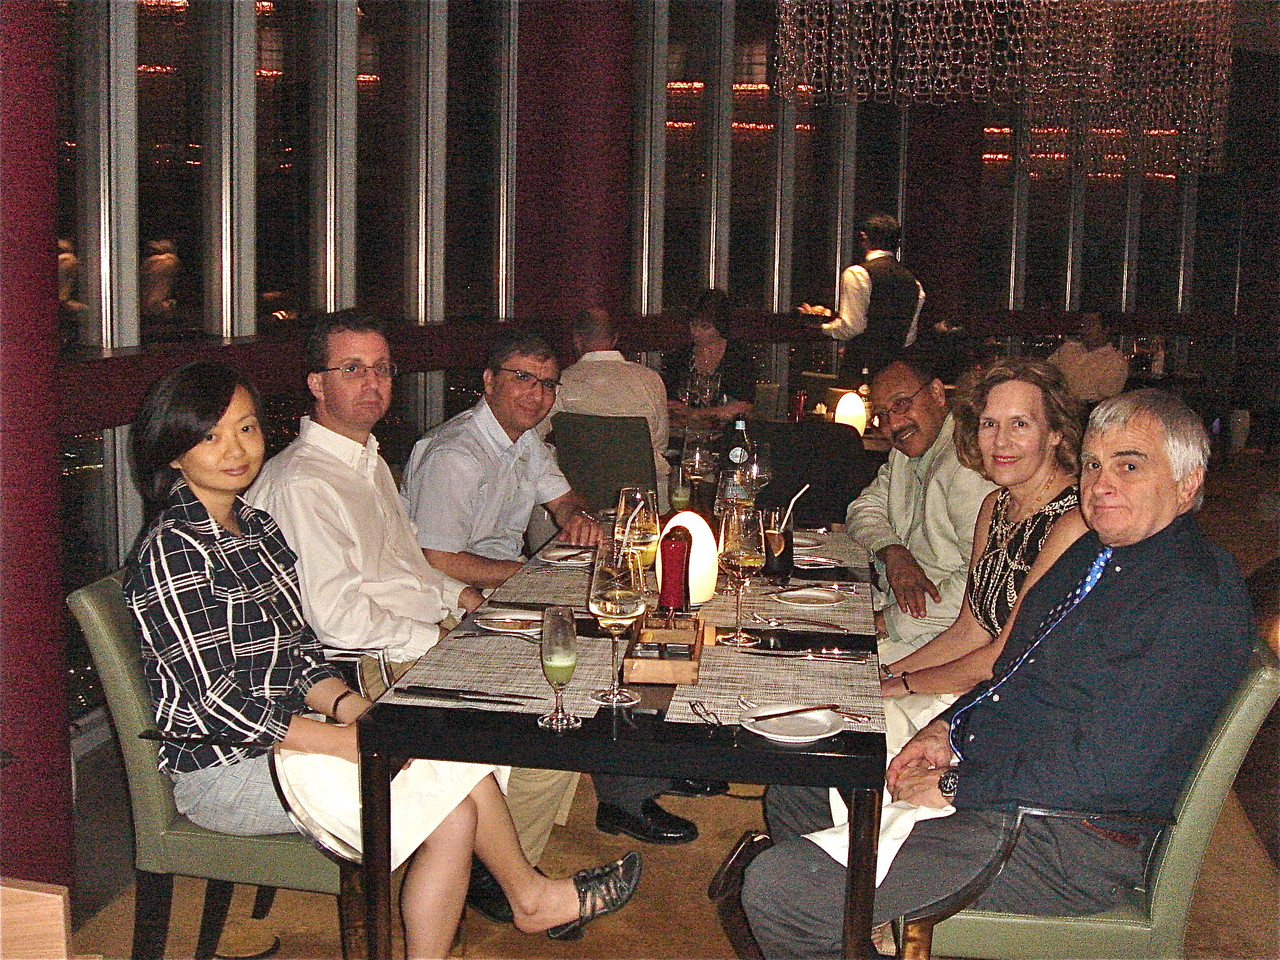 Lorraine with colleagues at dinner, the Torch, 360